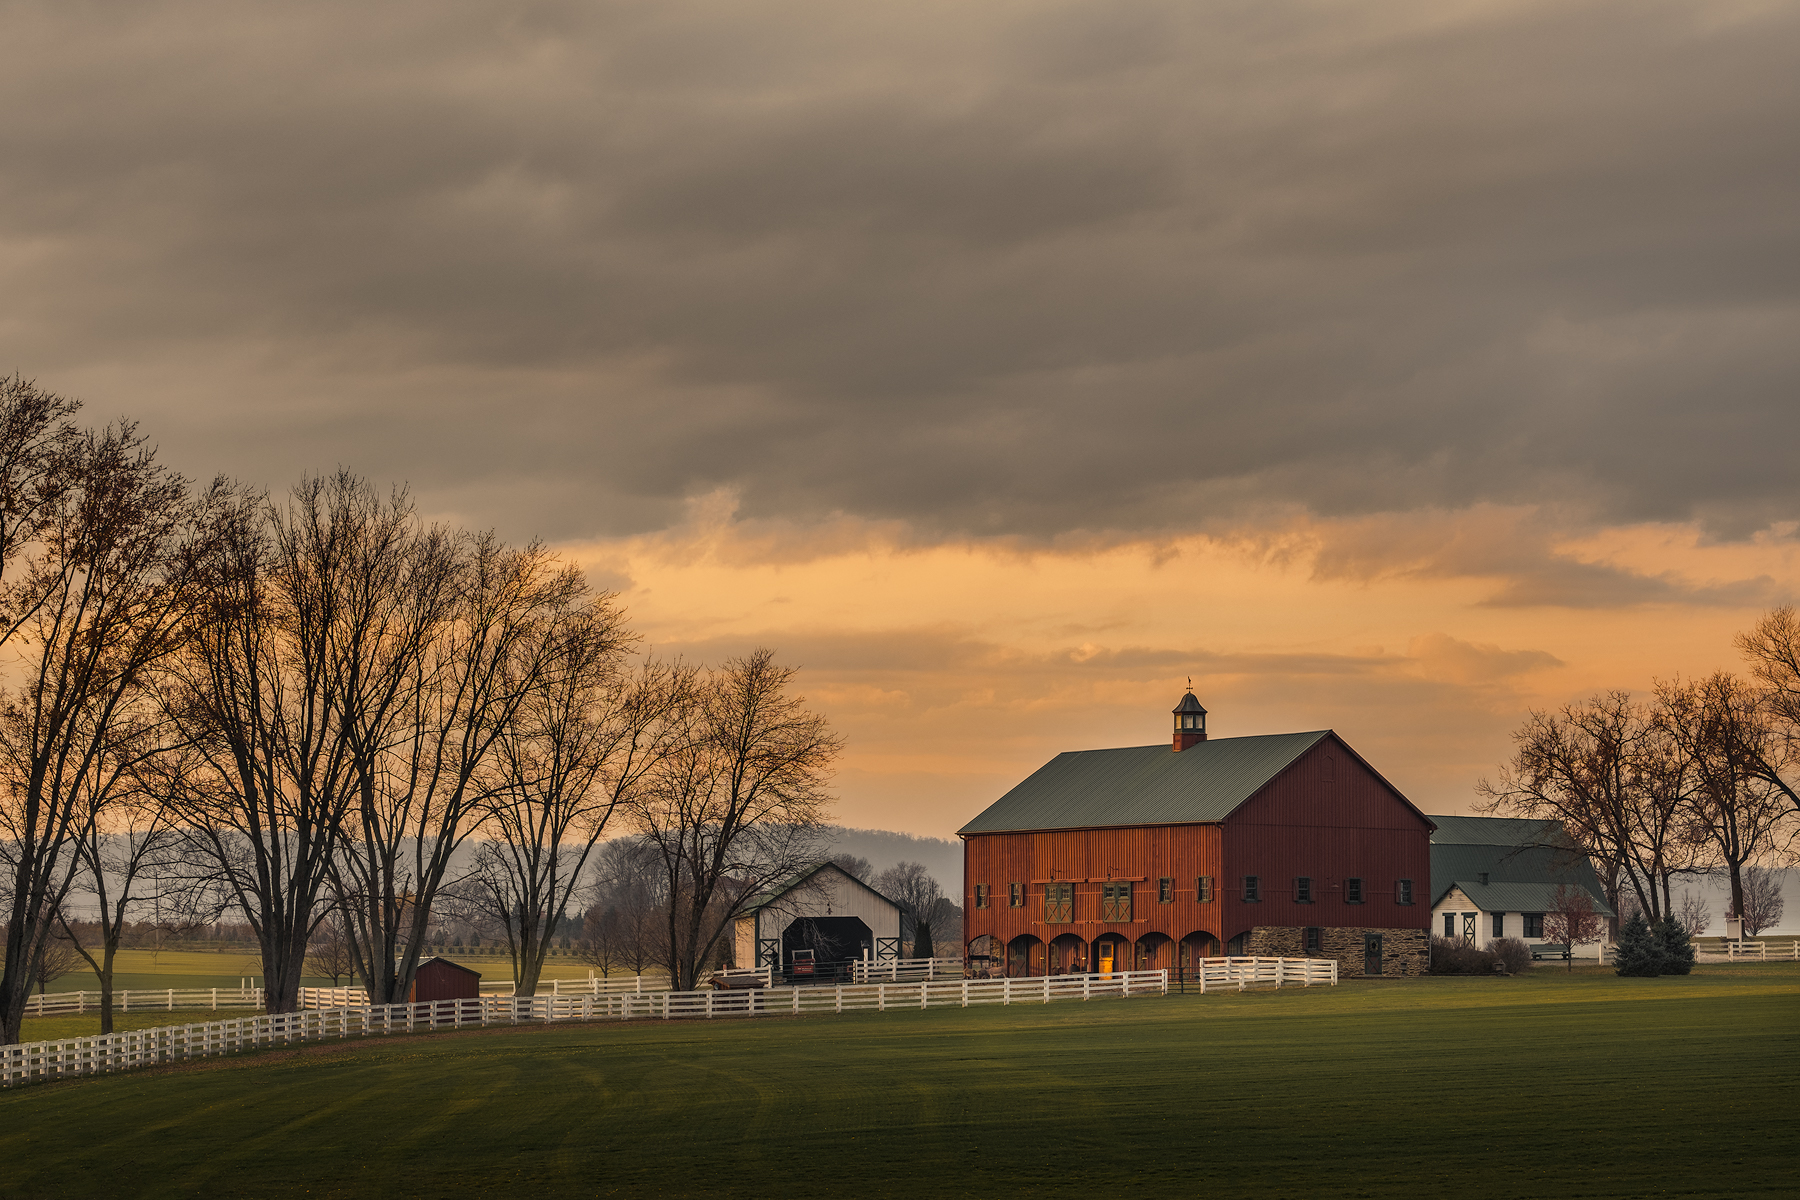 The Big Red Barn, No. 2 | Fuji X-T2 and a Fujinon XF50-140mm R OIS WR